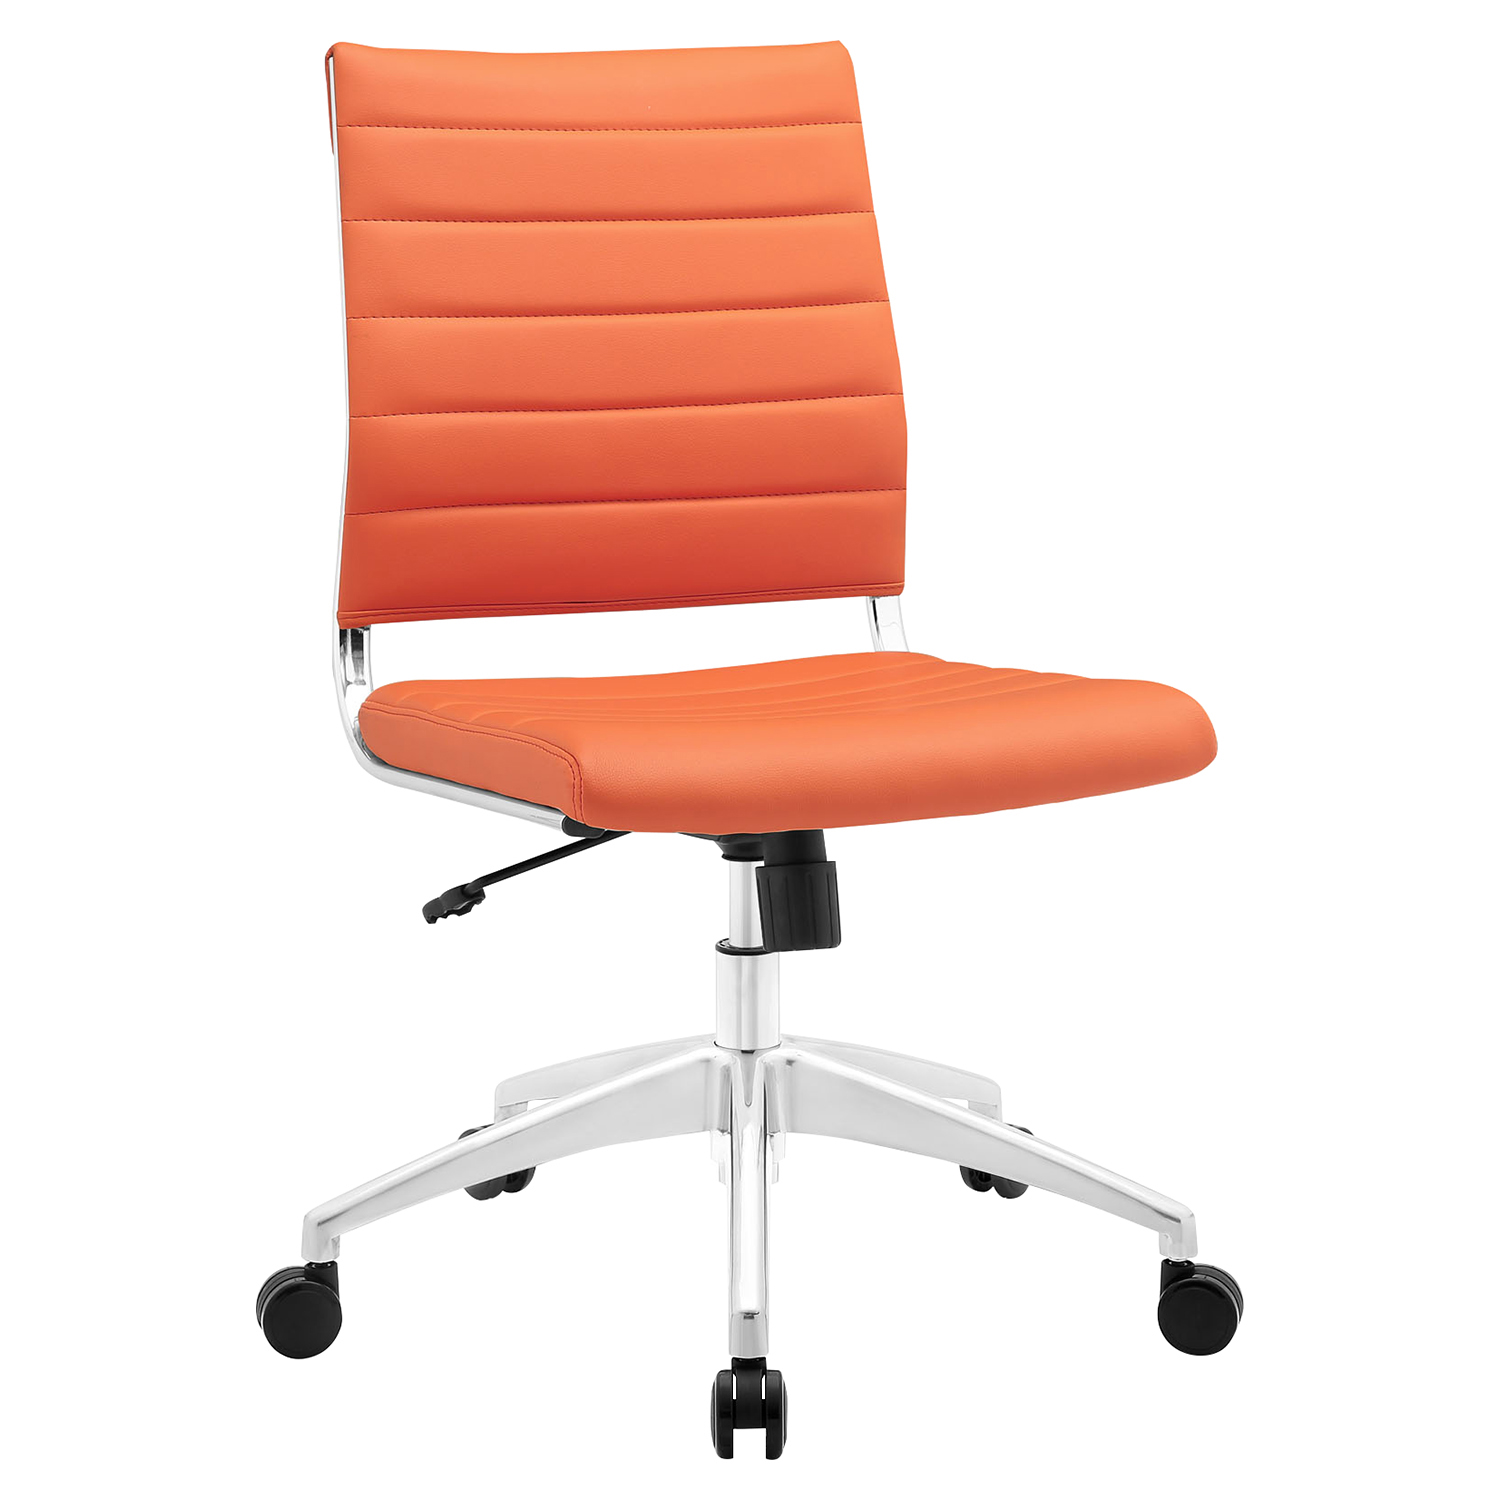 Jive Armless Mid Back Office Chair - Height Adjustable - EEI-1525